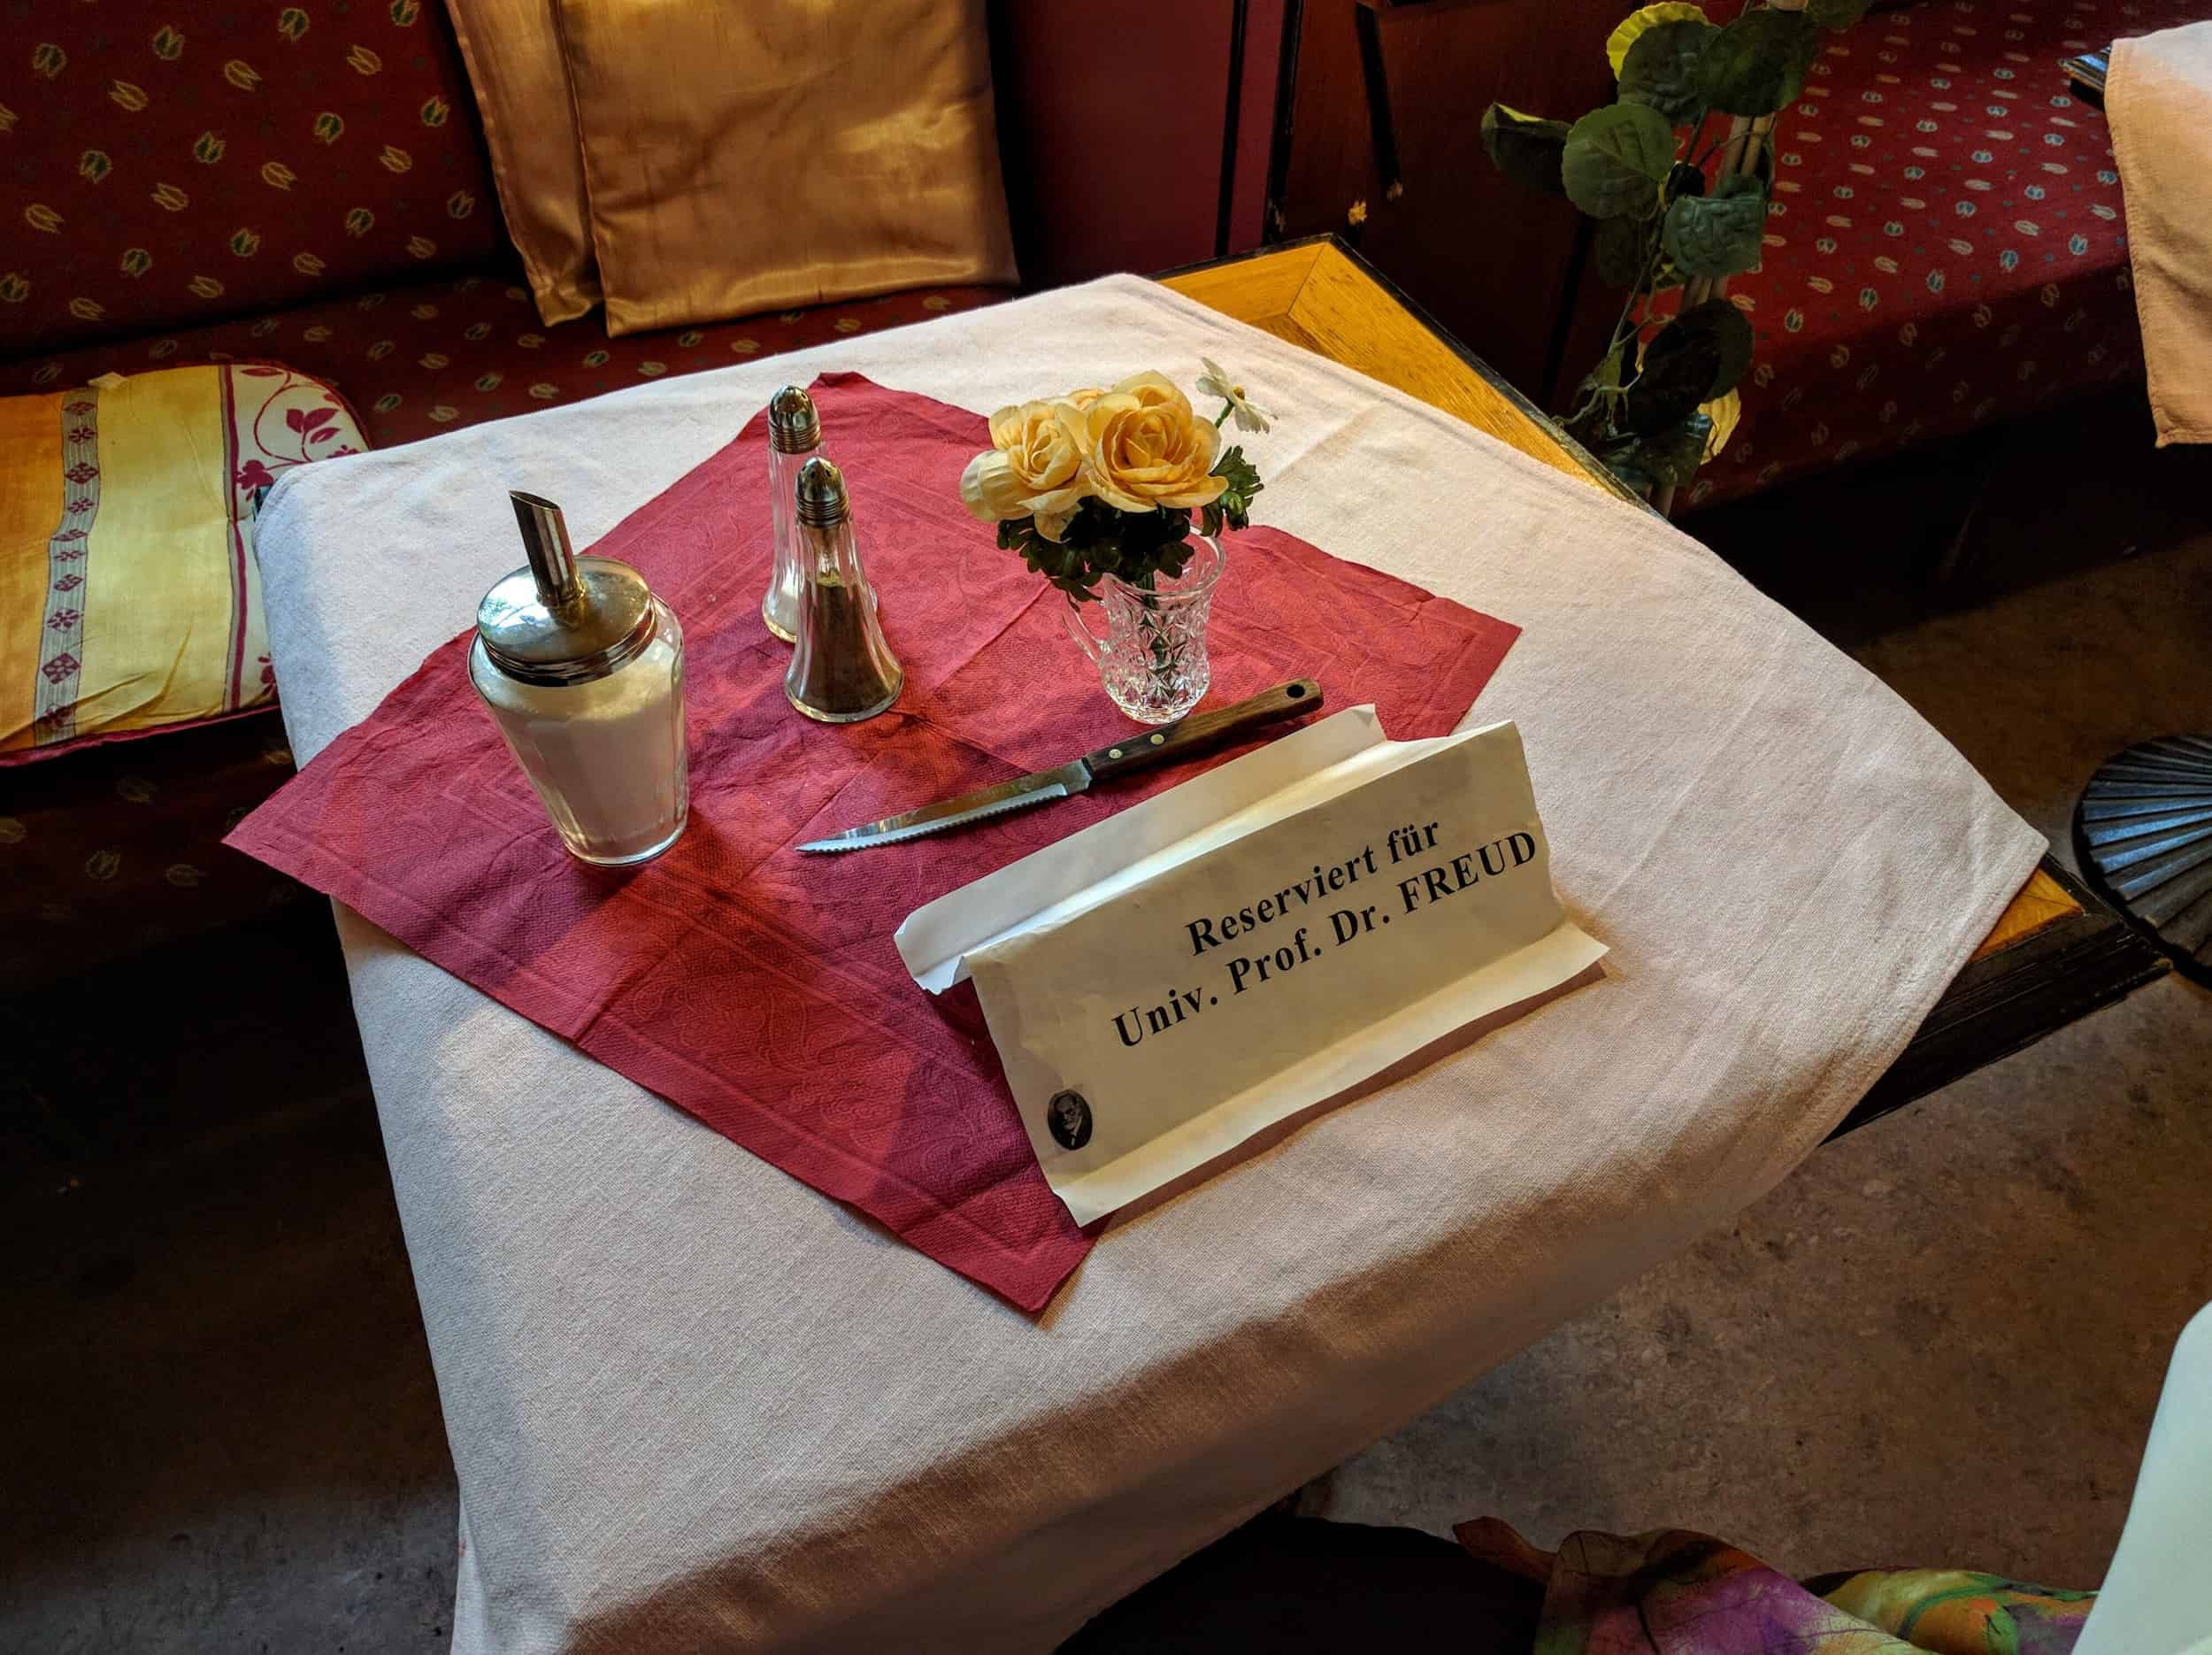 A table is reserved for Dr. Freud.